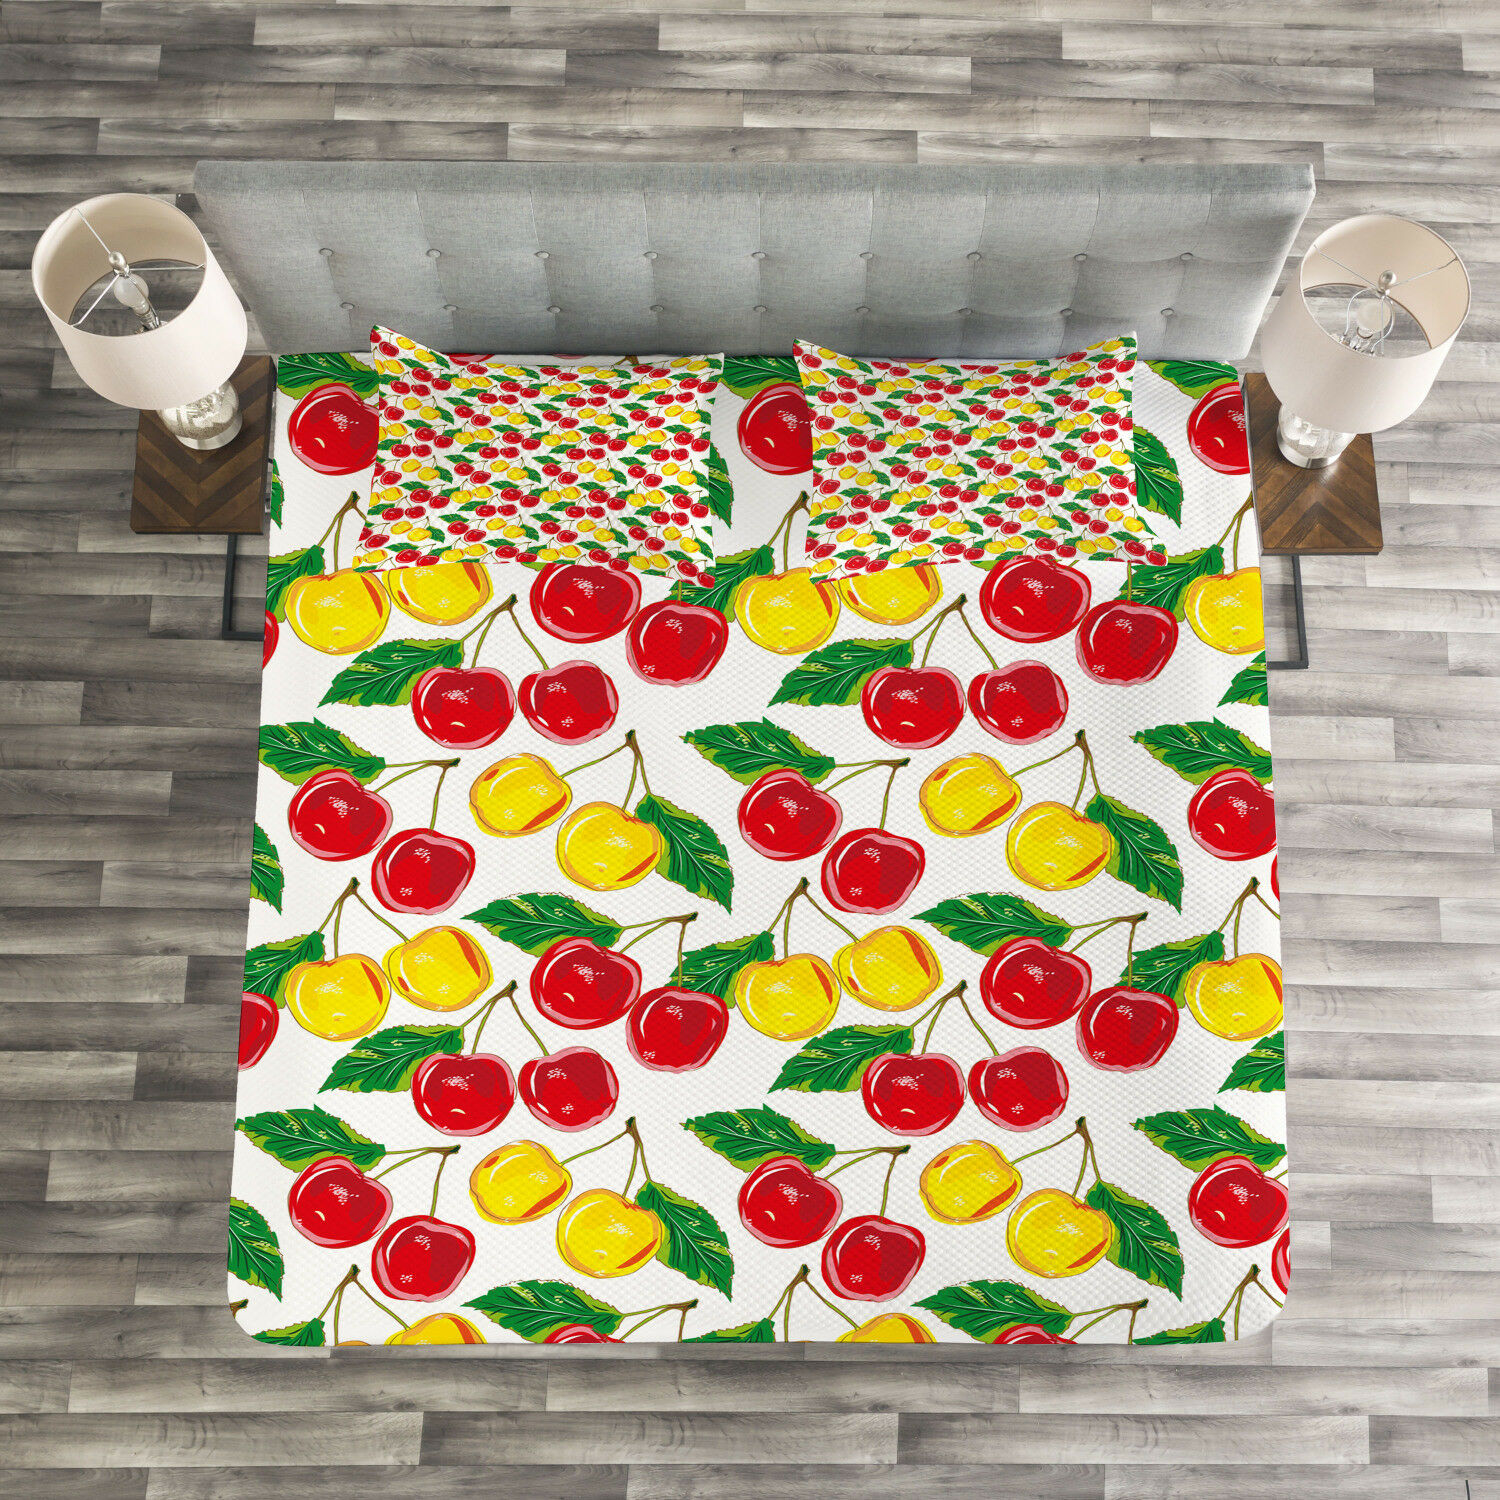 Fruit Quilted Bedspread & Pillow Shams Set, Graphic colord Cherries Print